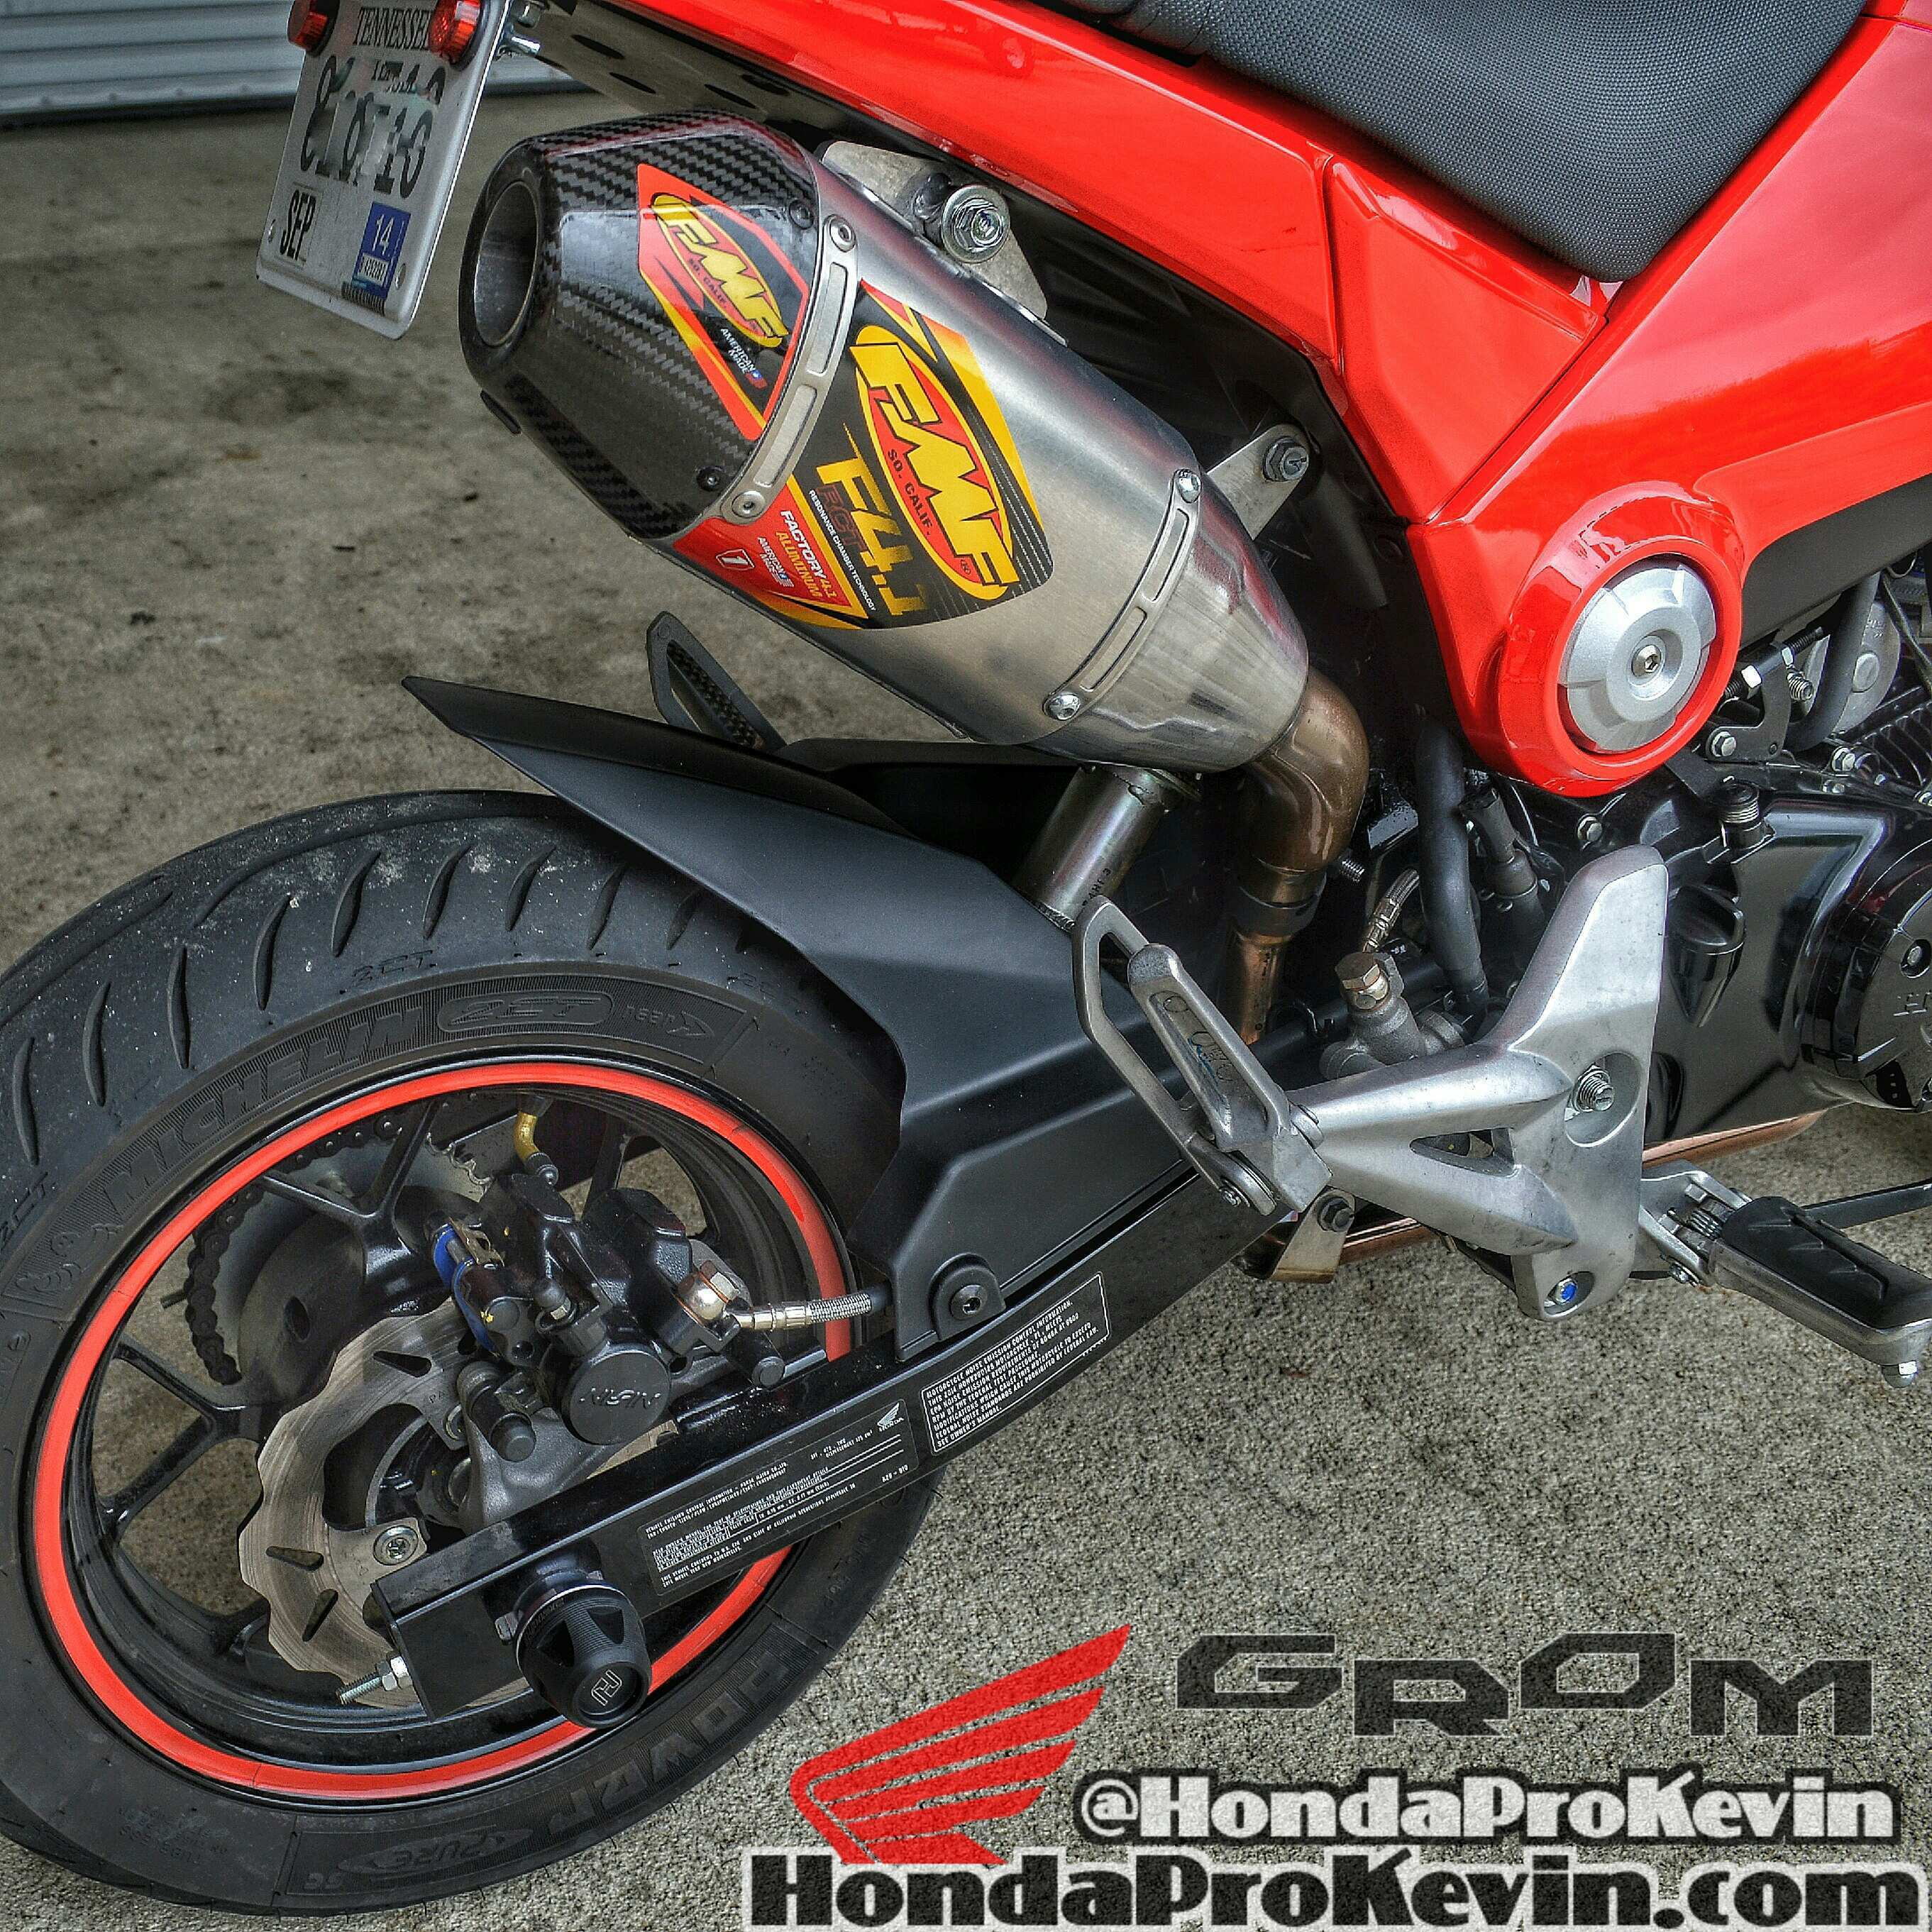 87 Great 2020 Honda Grom Top Speed Images by 2020 Honda Grom Top Speed